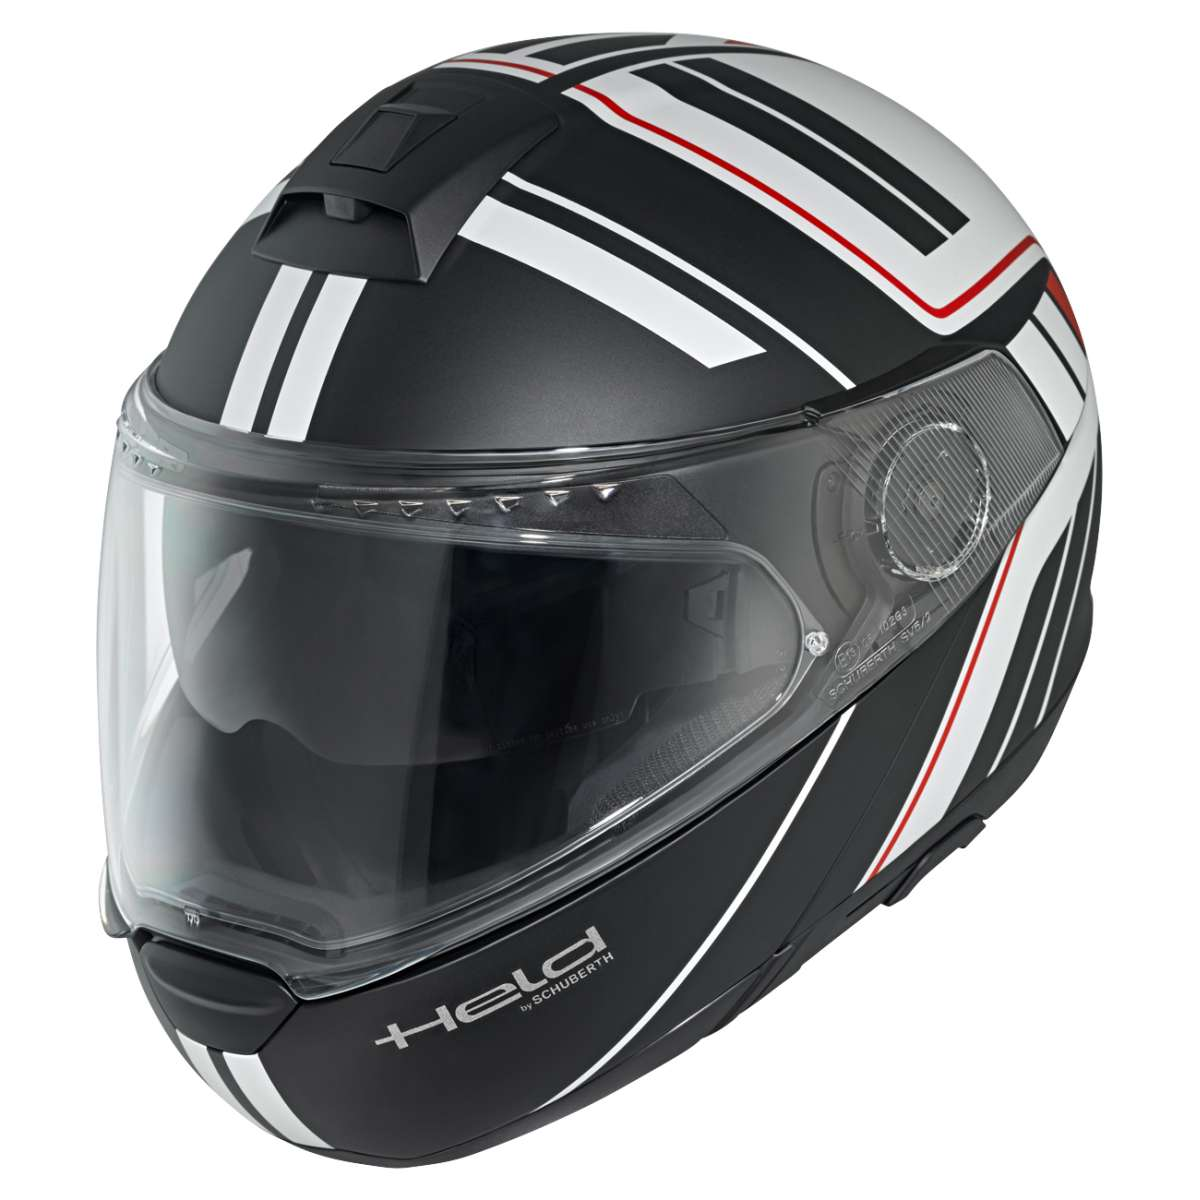 held by schuberth h c4 tour klapphelm schwarz wei. Black Bedroom Furniture Sets. Home Design Ideas